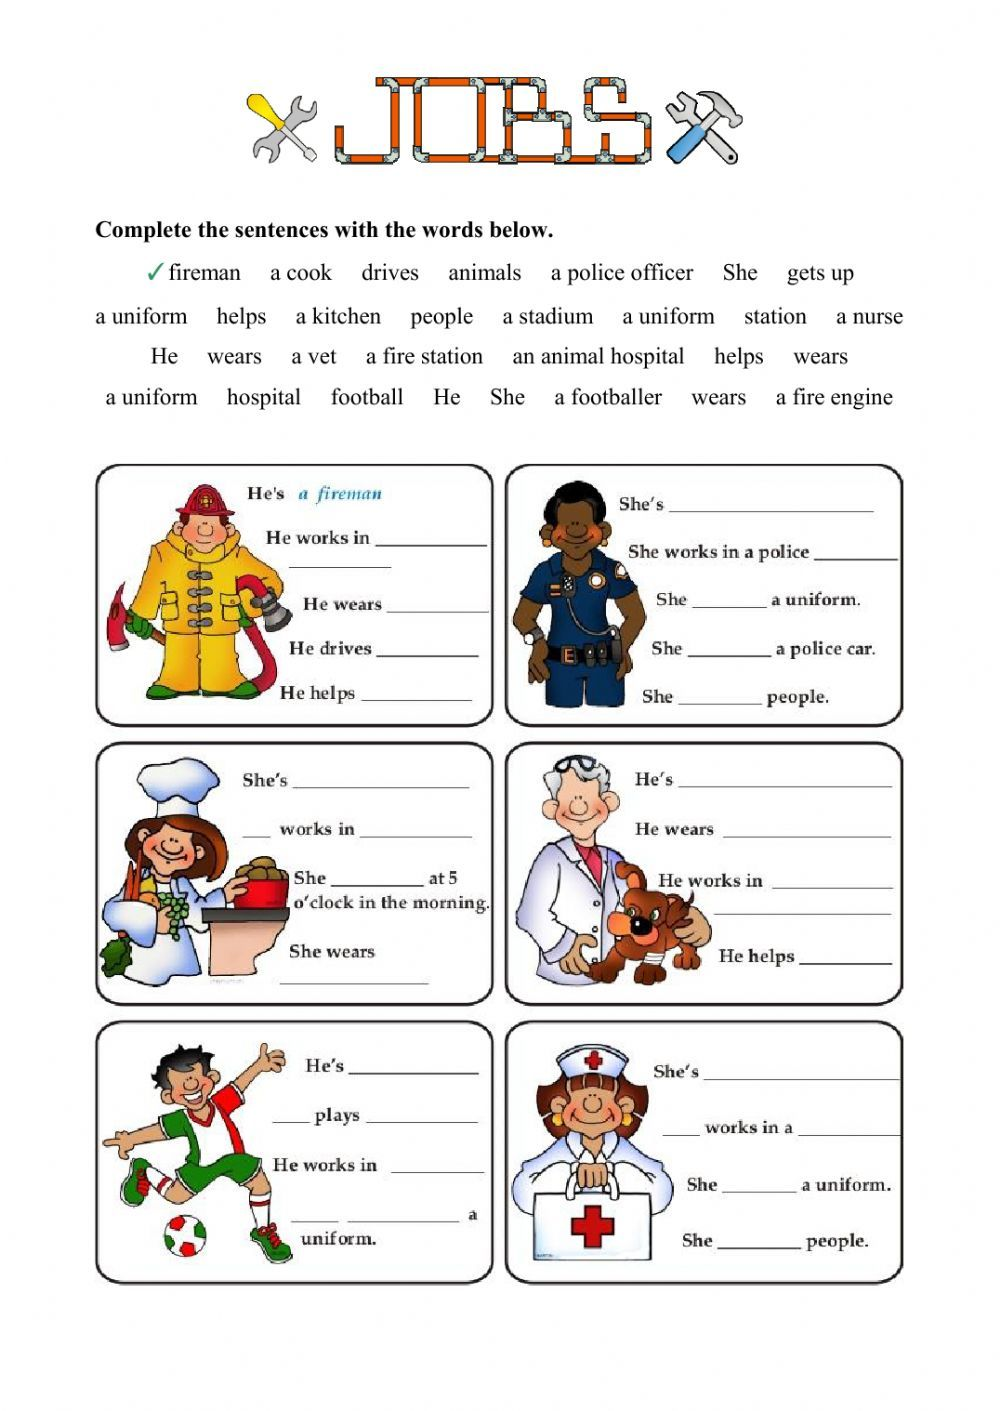 Jobs and occupations interactive and downloadable worksheet. You can ...